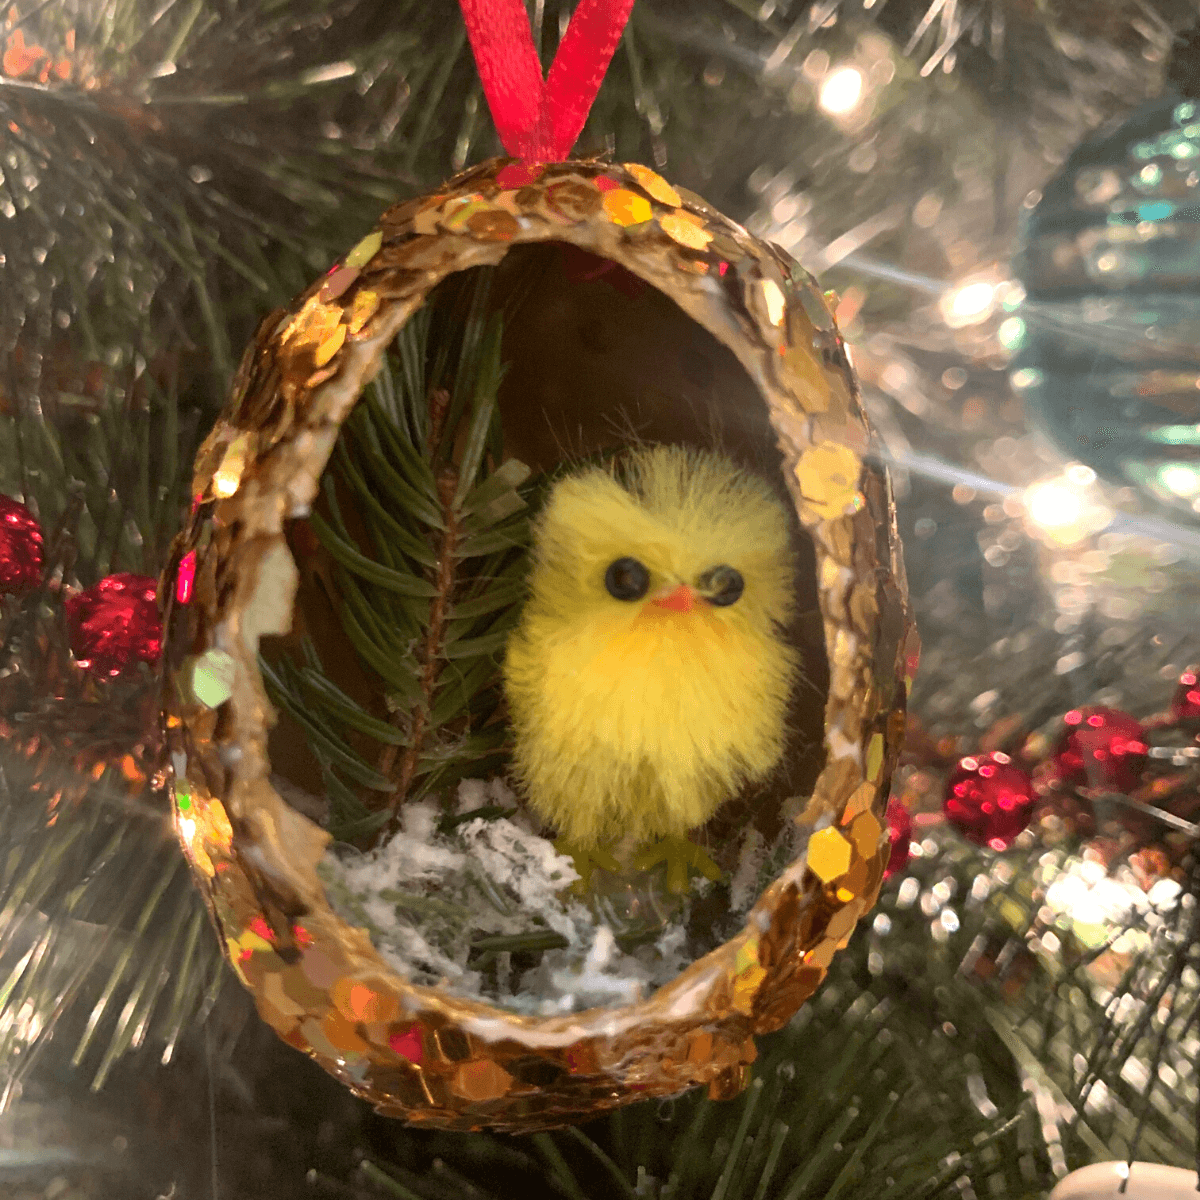 Chicken Themed Ornament Blog